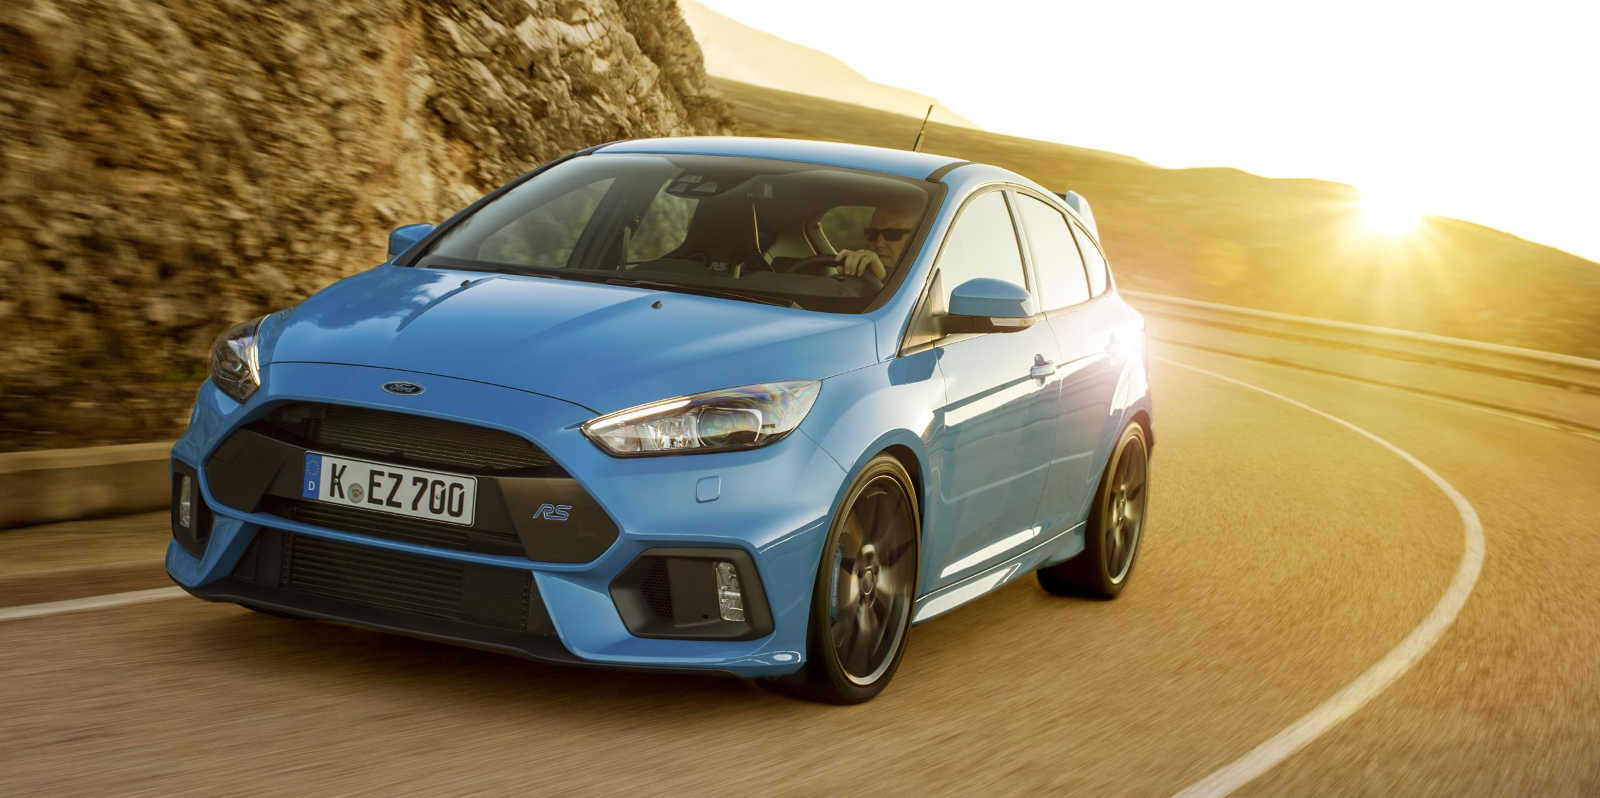 El Ford Focus RS (Foto: Ford)